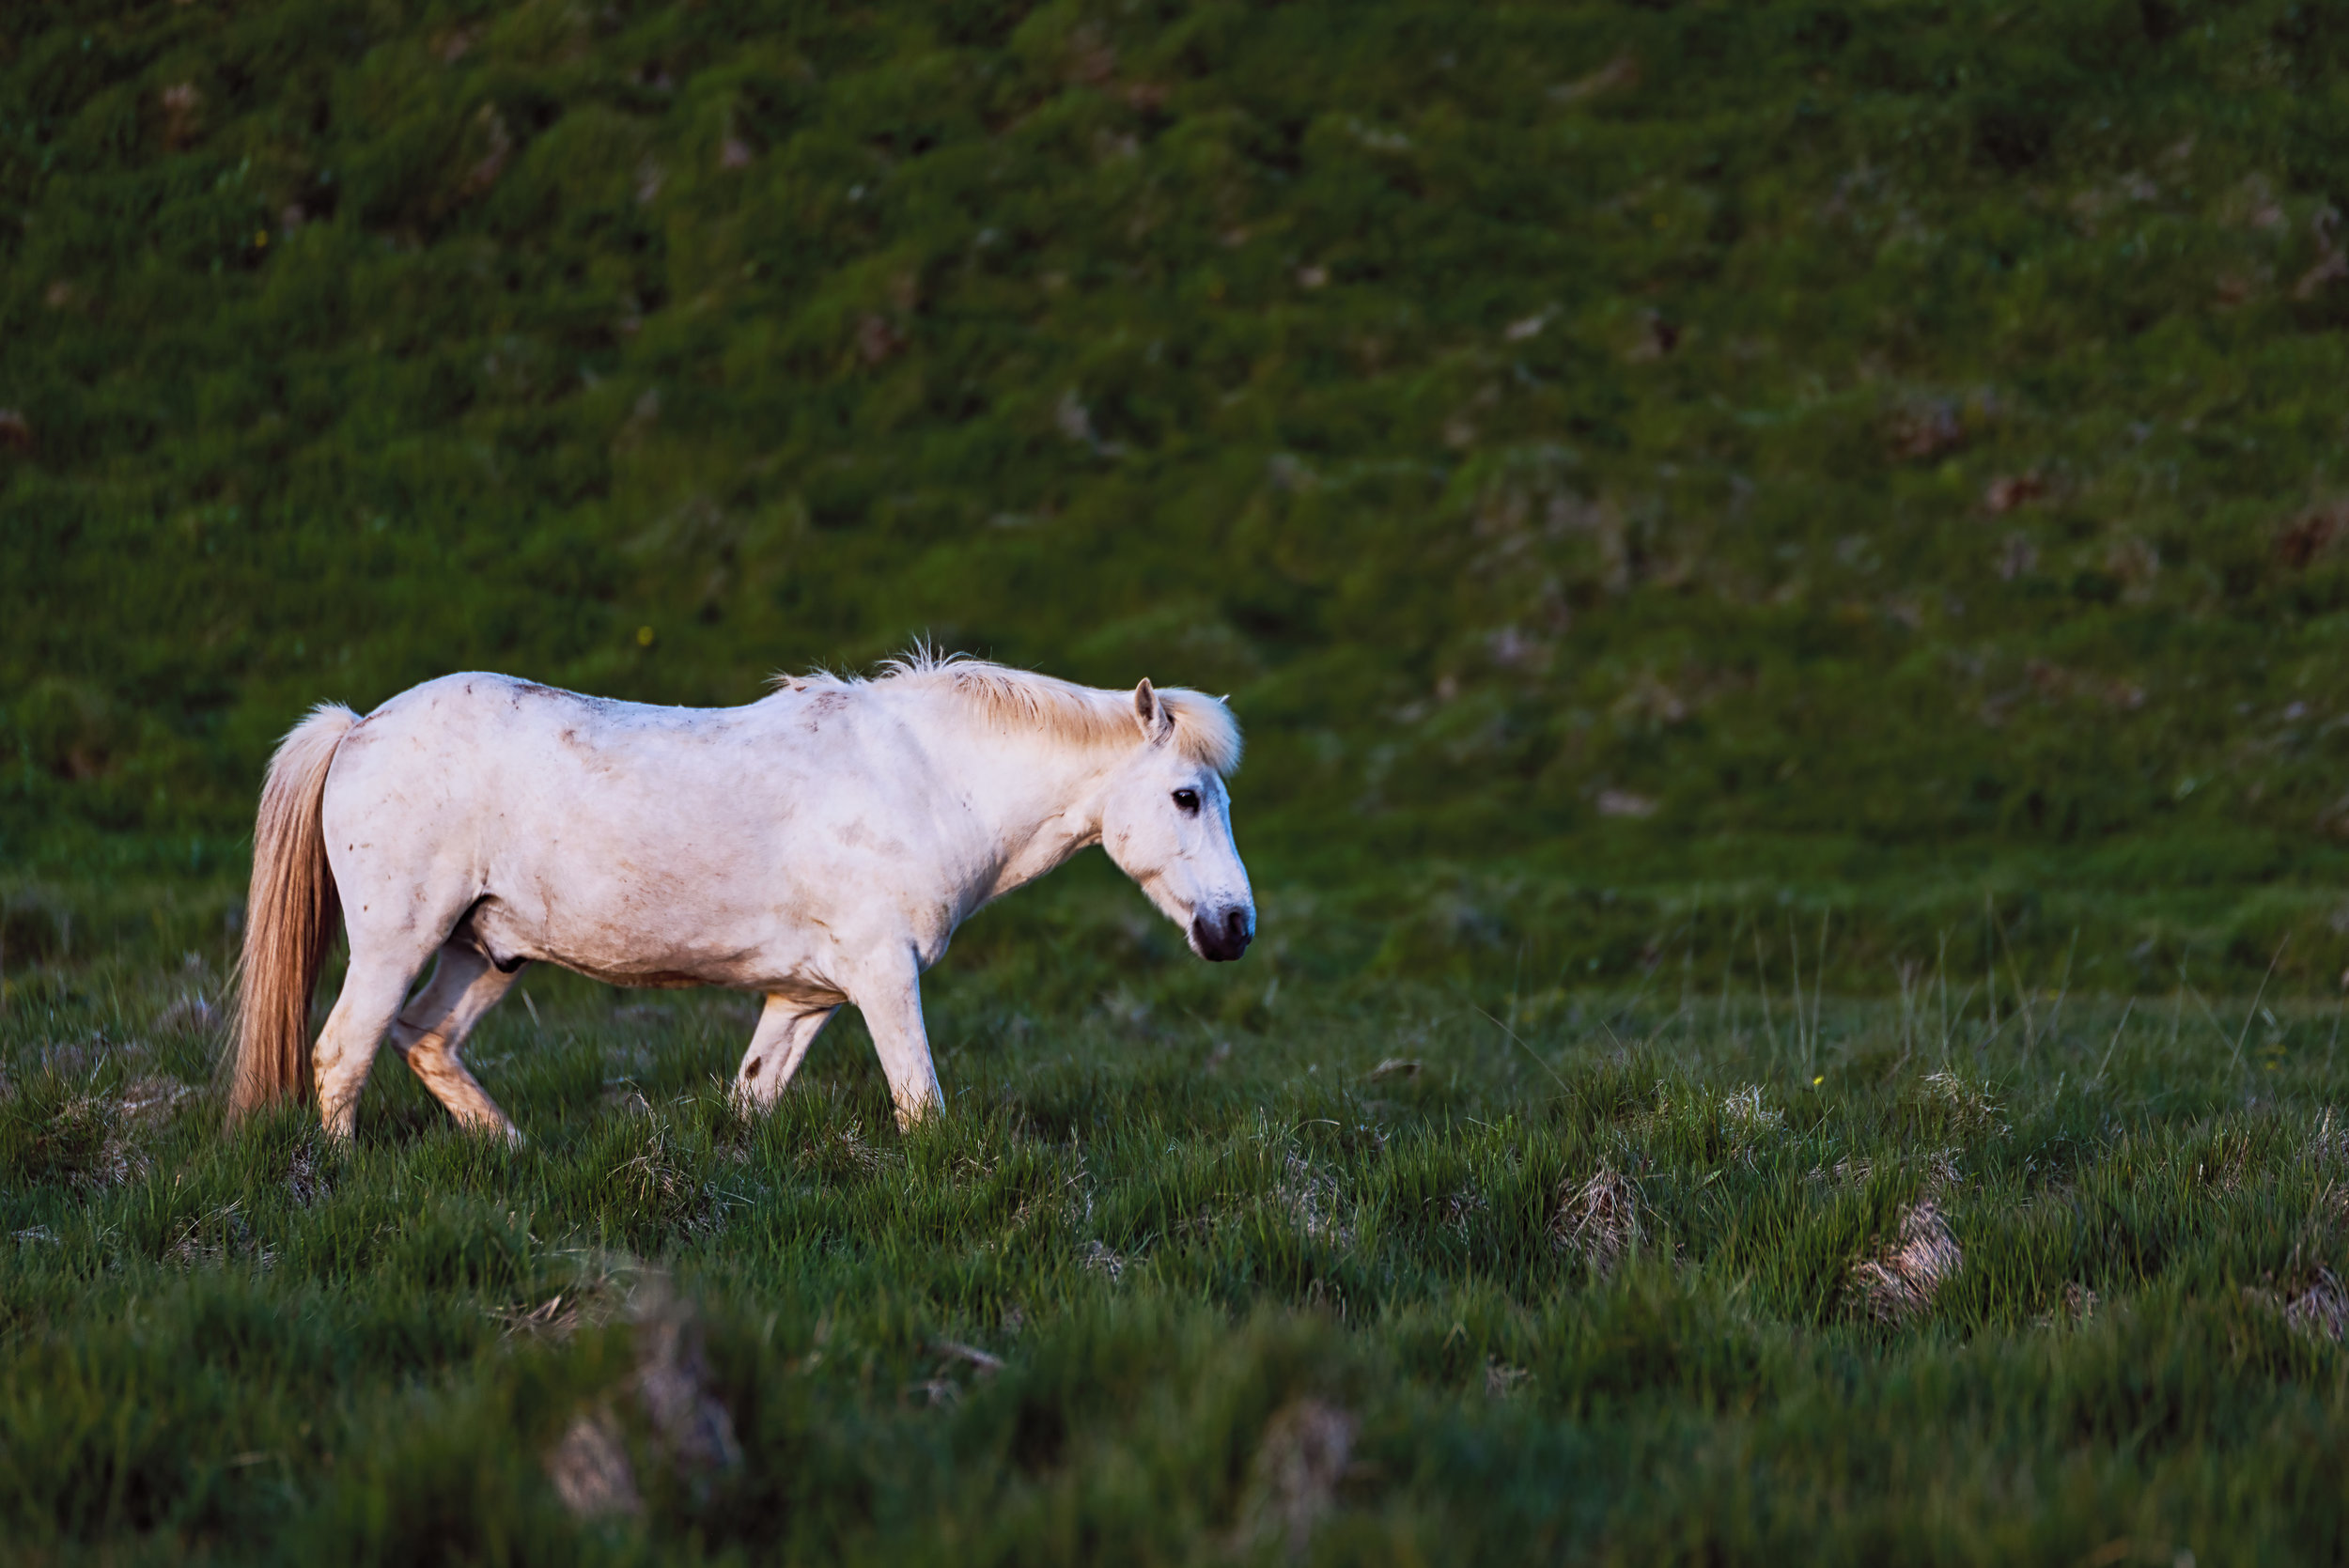 A night photo of an Icelandic horse